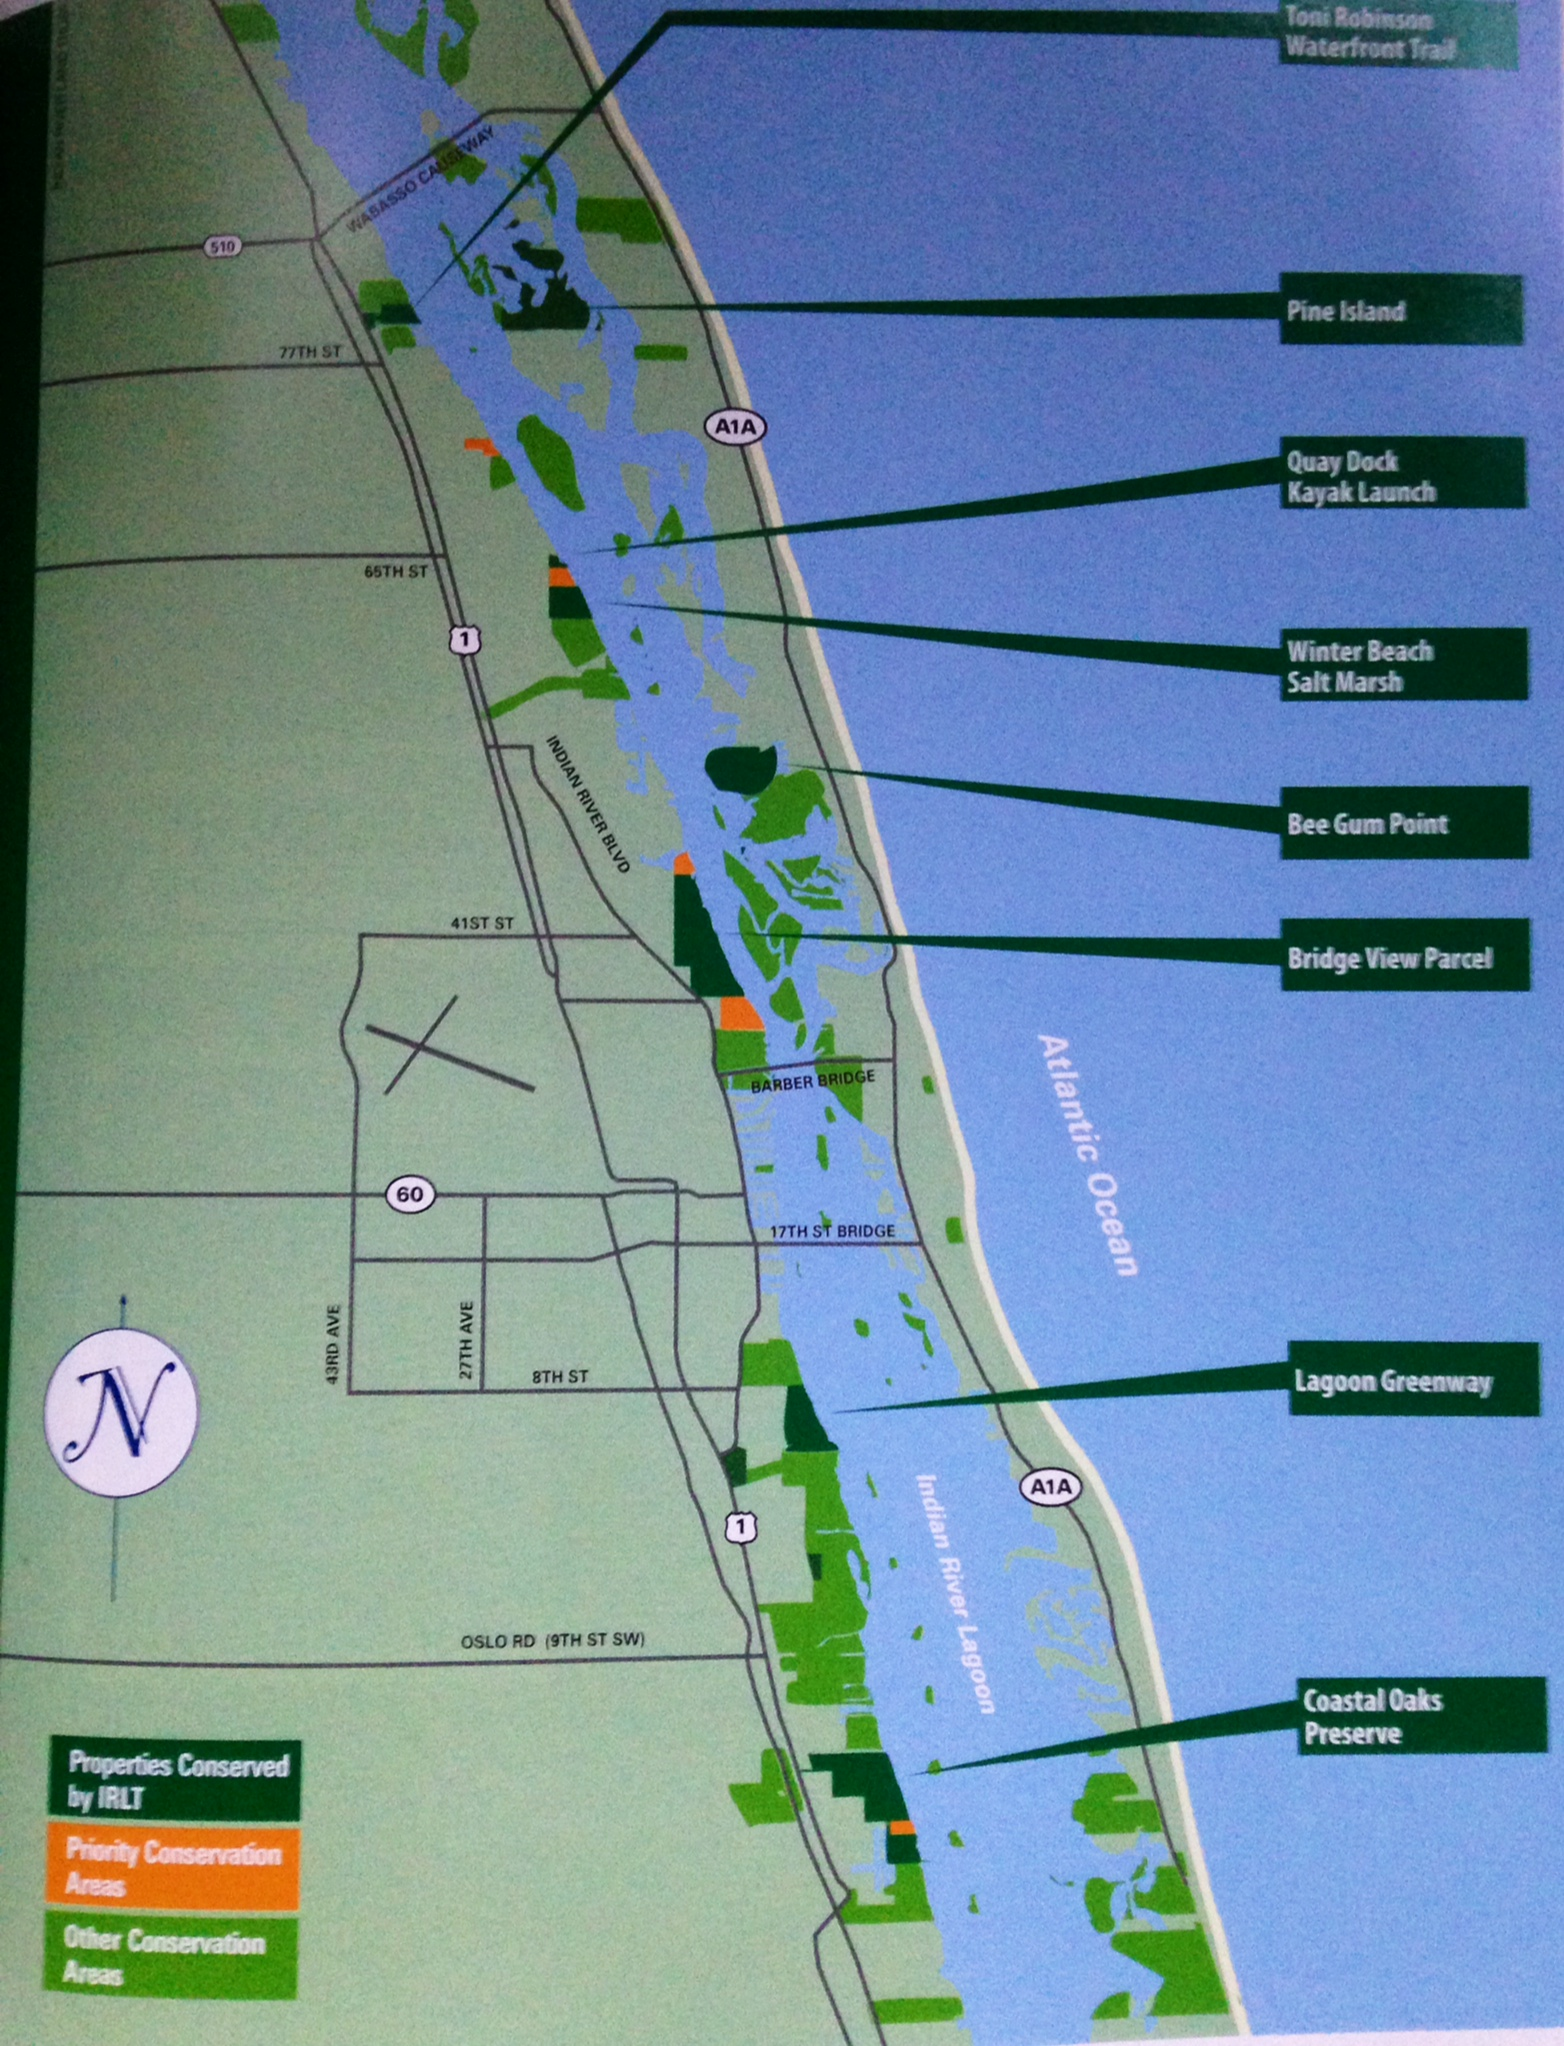 The Amazing Work Of The Indian River Land Trust Along The Indian - Indian river lagoon map